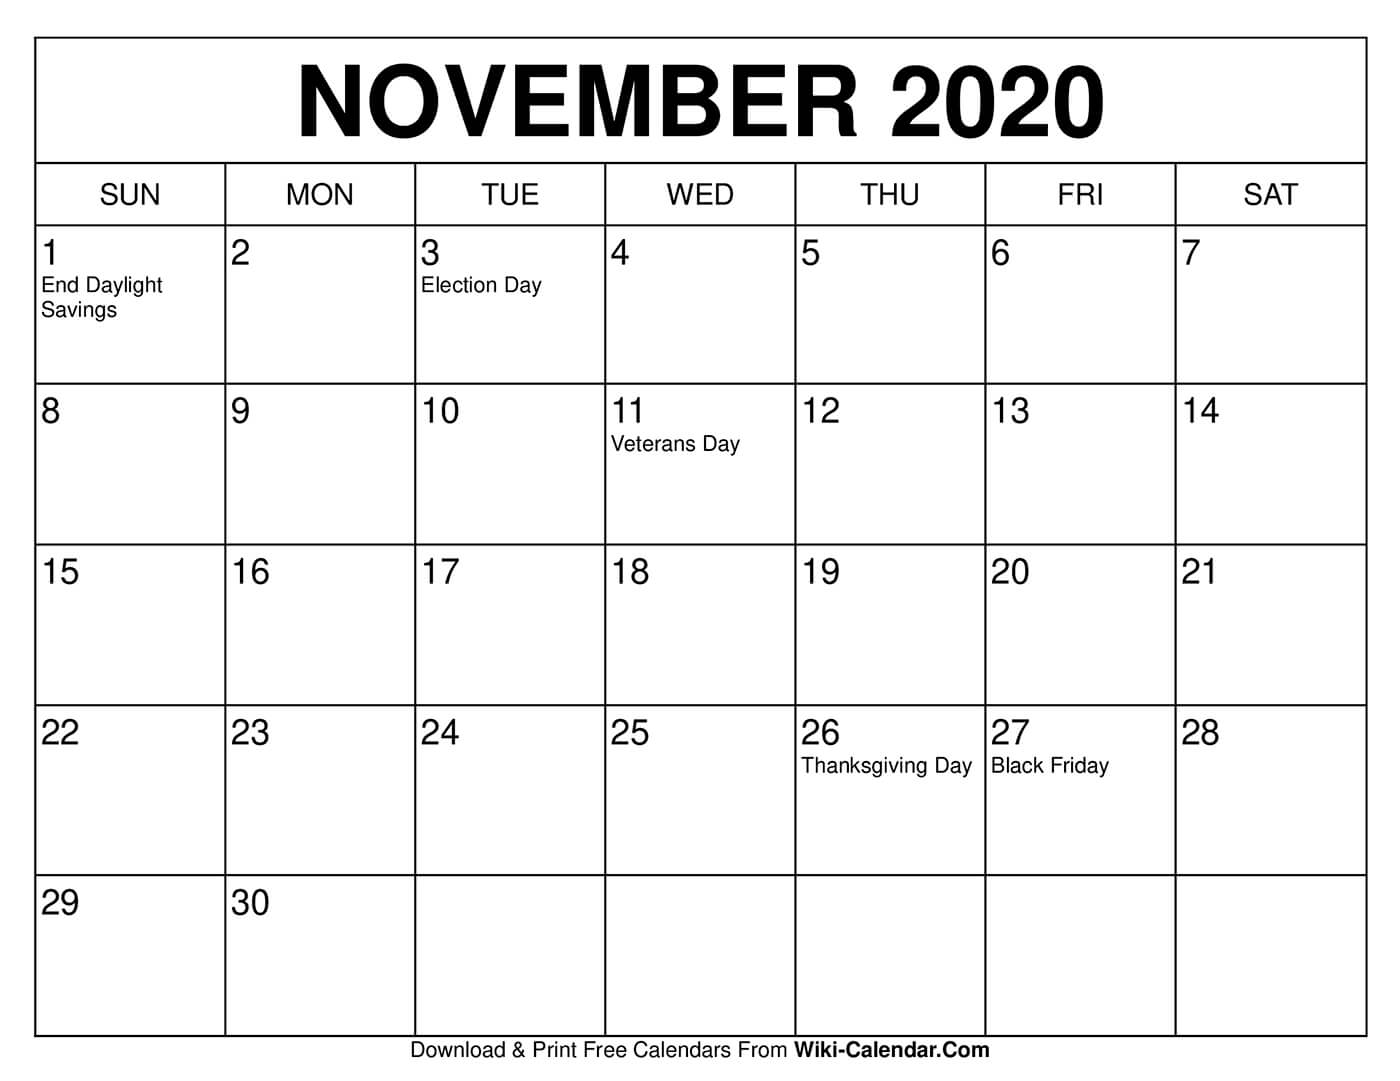 Miss one of these dates or deadlines in november, and it could cost you. Free Printable November 2020 Calendars